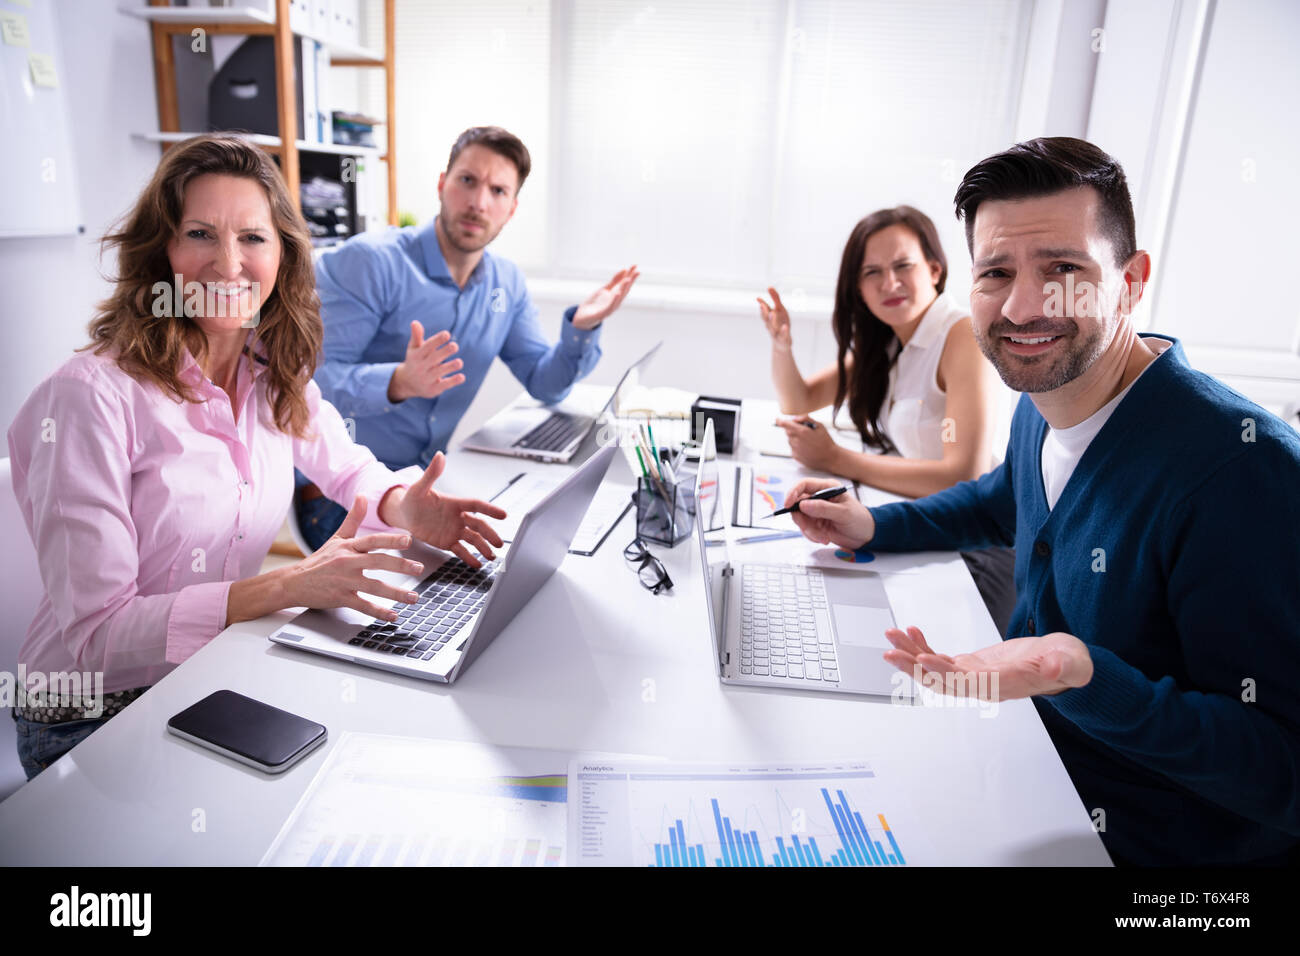 Group Of Business Executives Complaining Toward Camera In Office - Stock Image